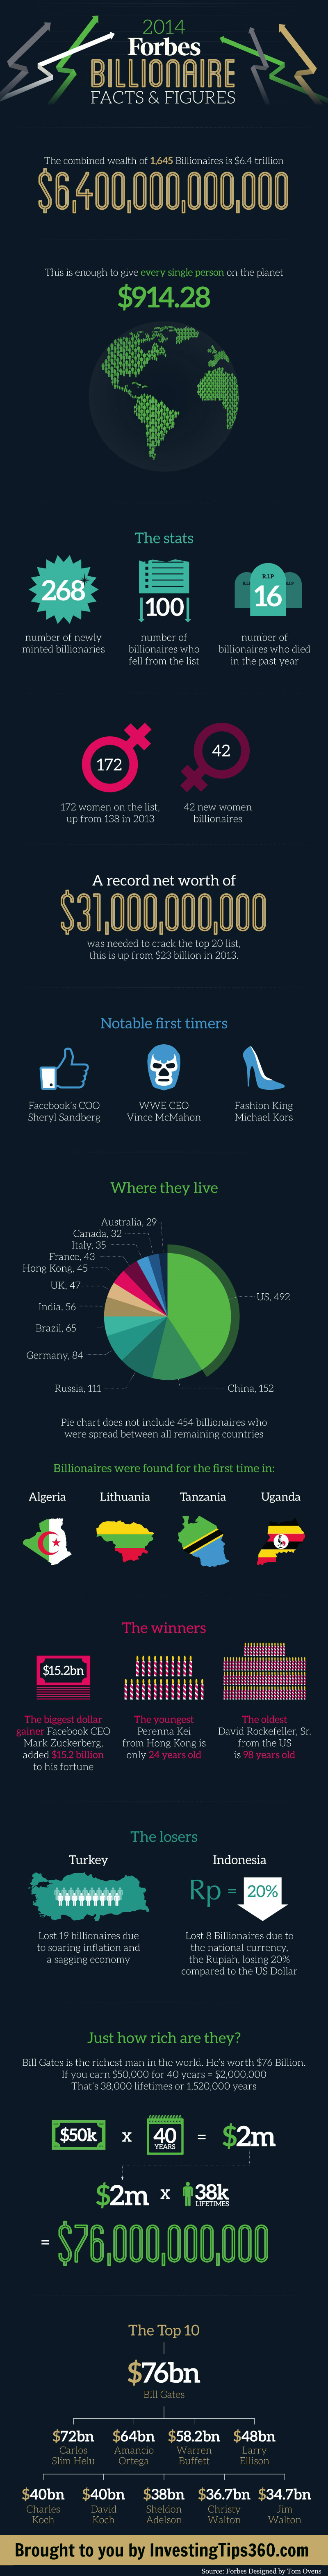 2014 Forbes Billionaire List Facts & Figures